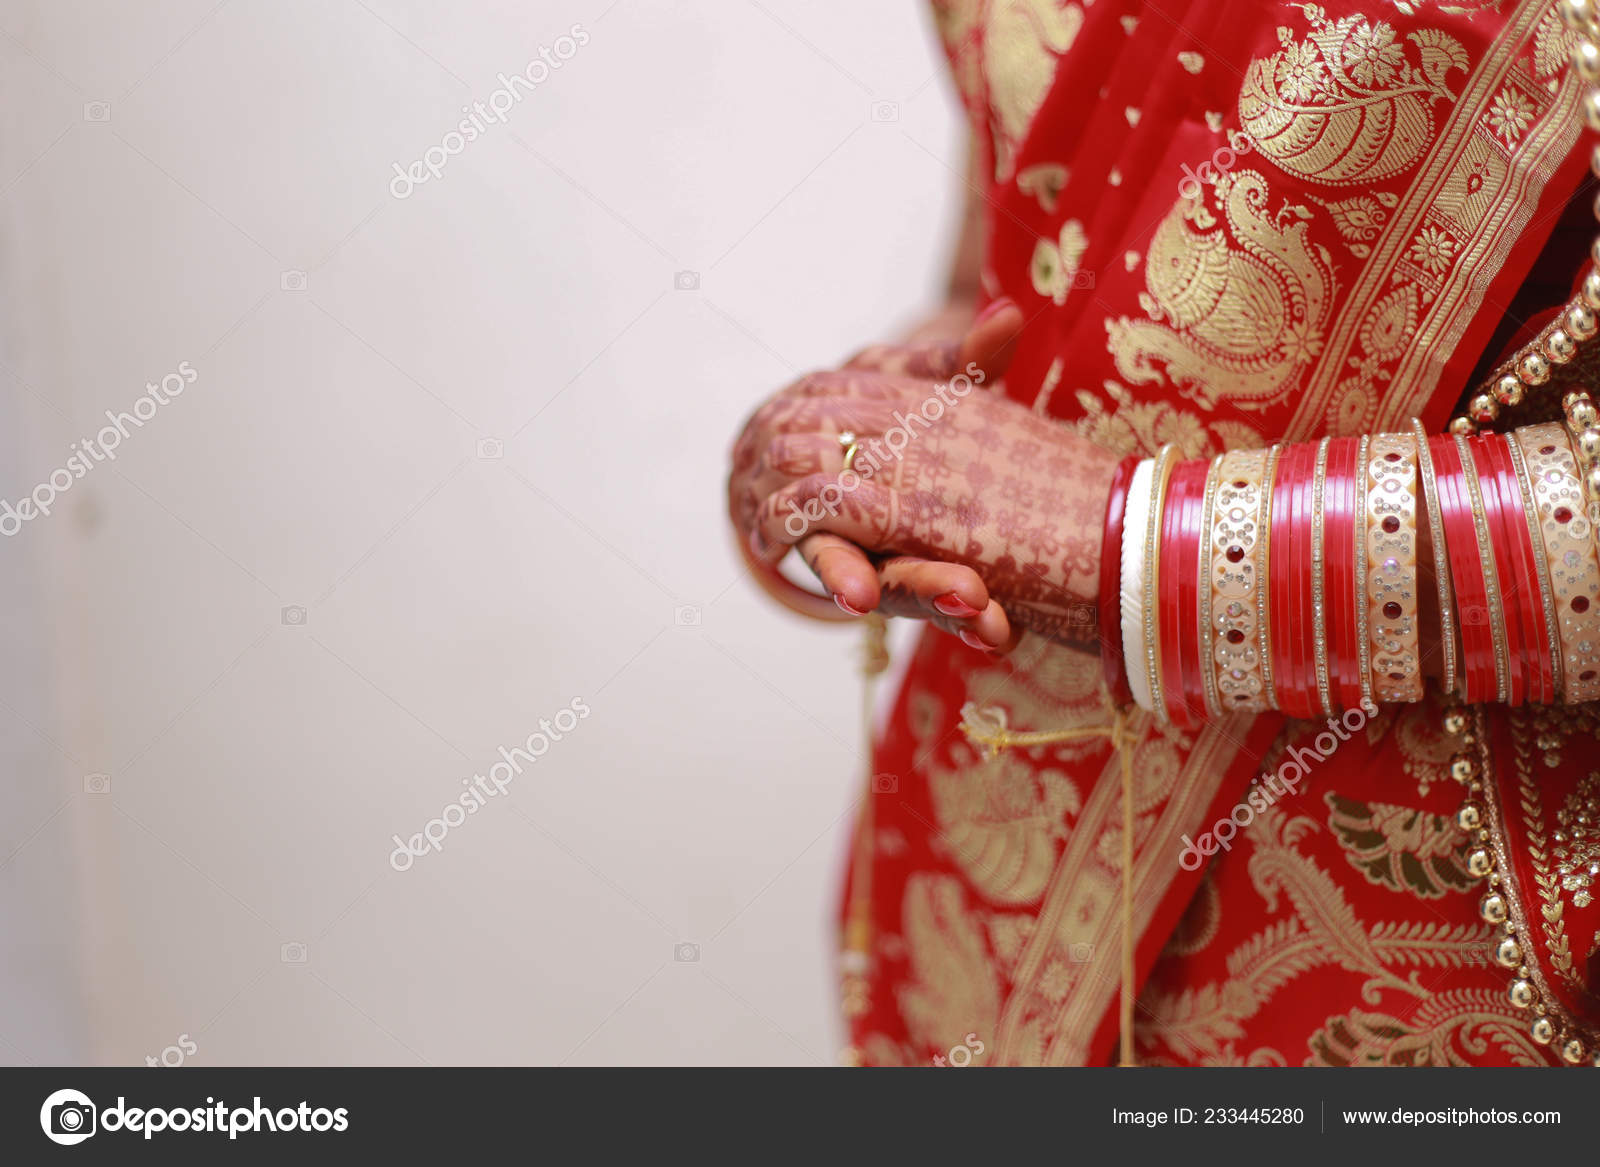 Indian Bengali Punjabi Bride Banarasi Saree Holding Hands